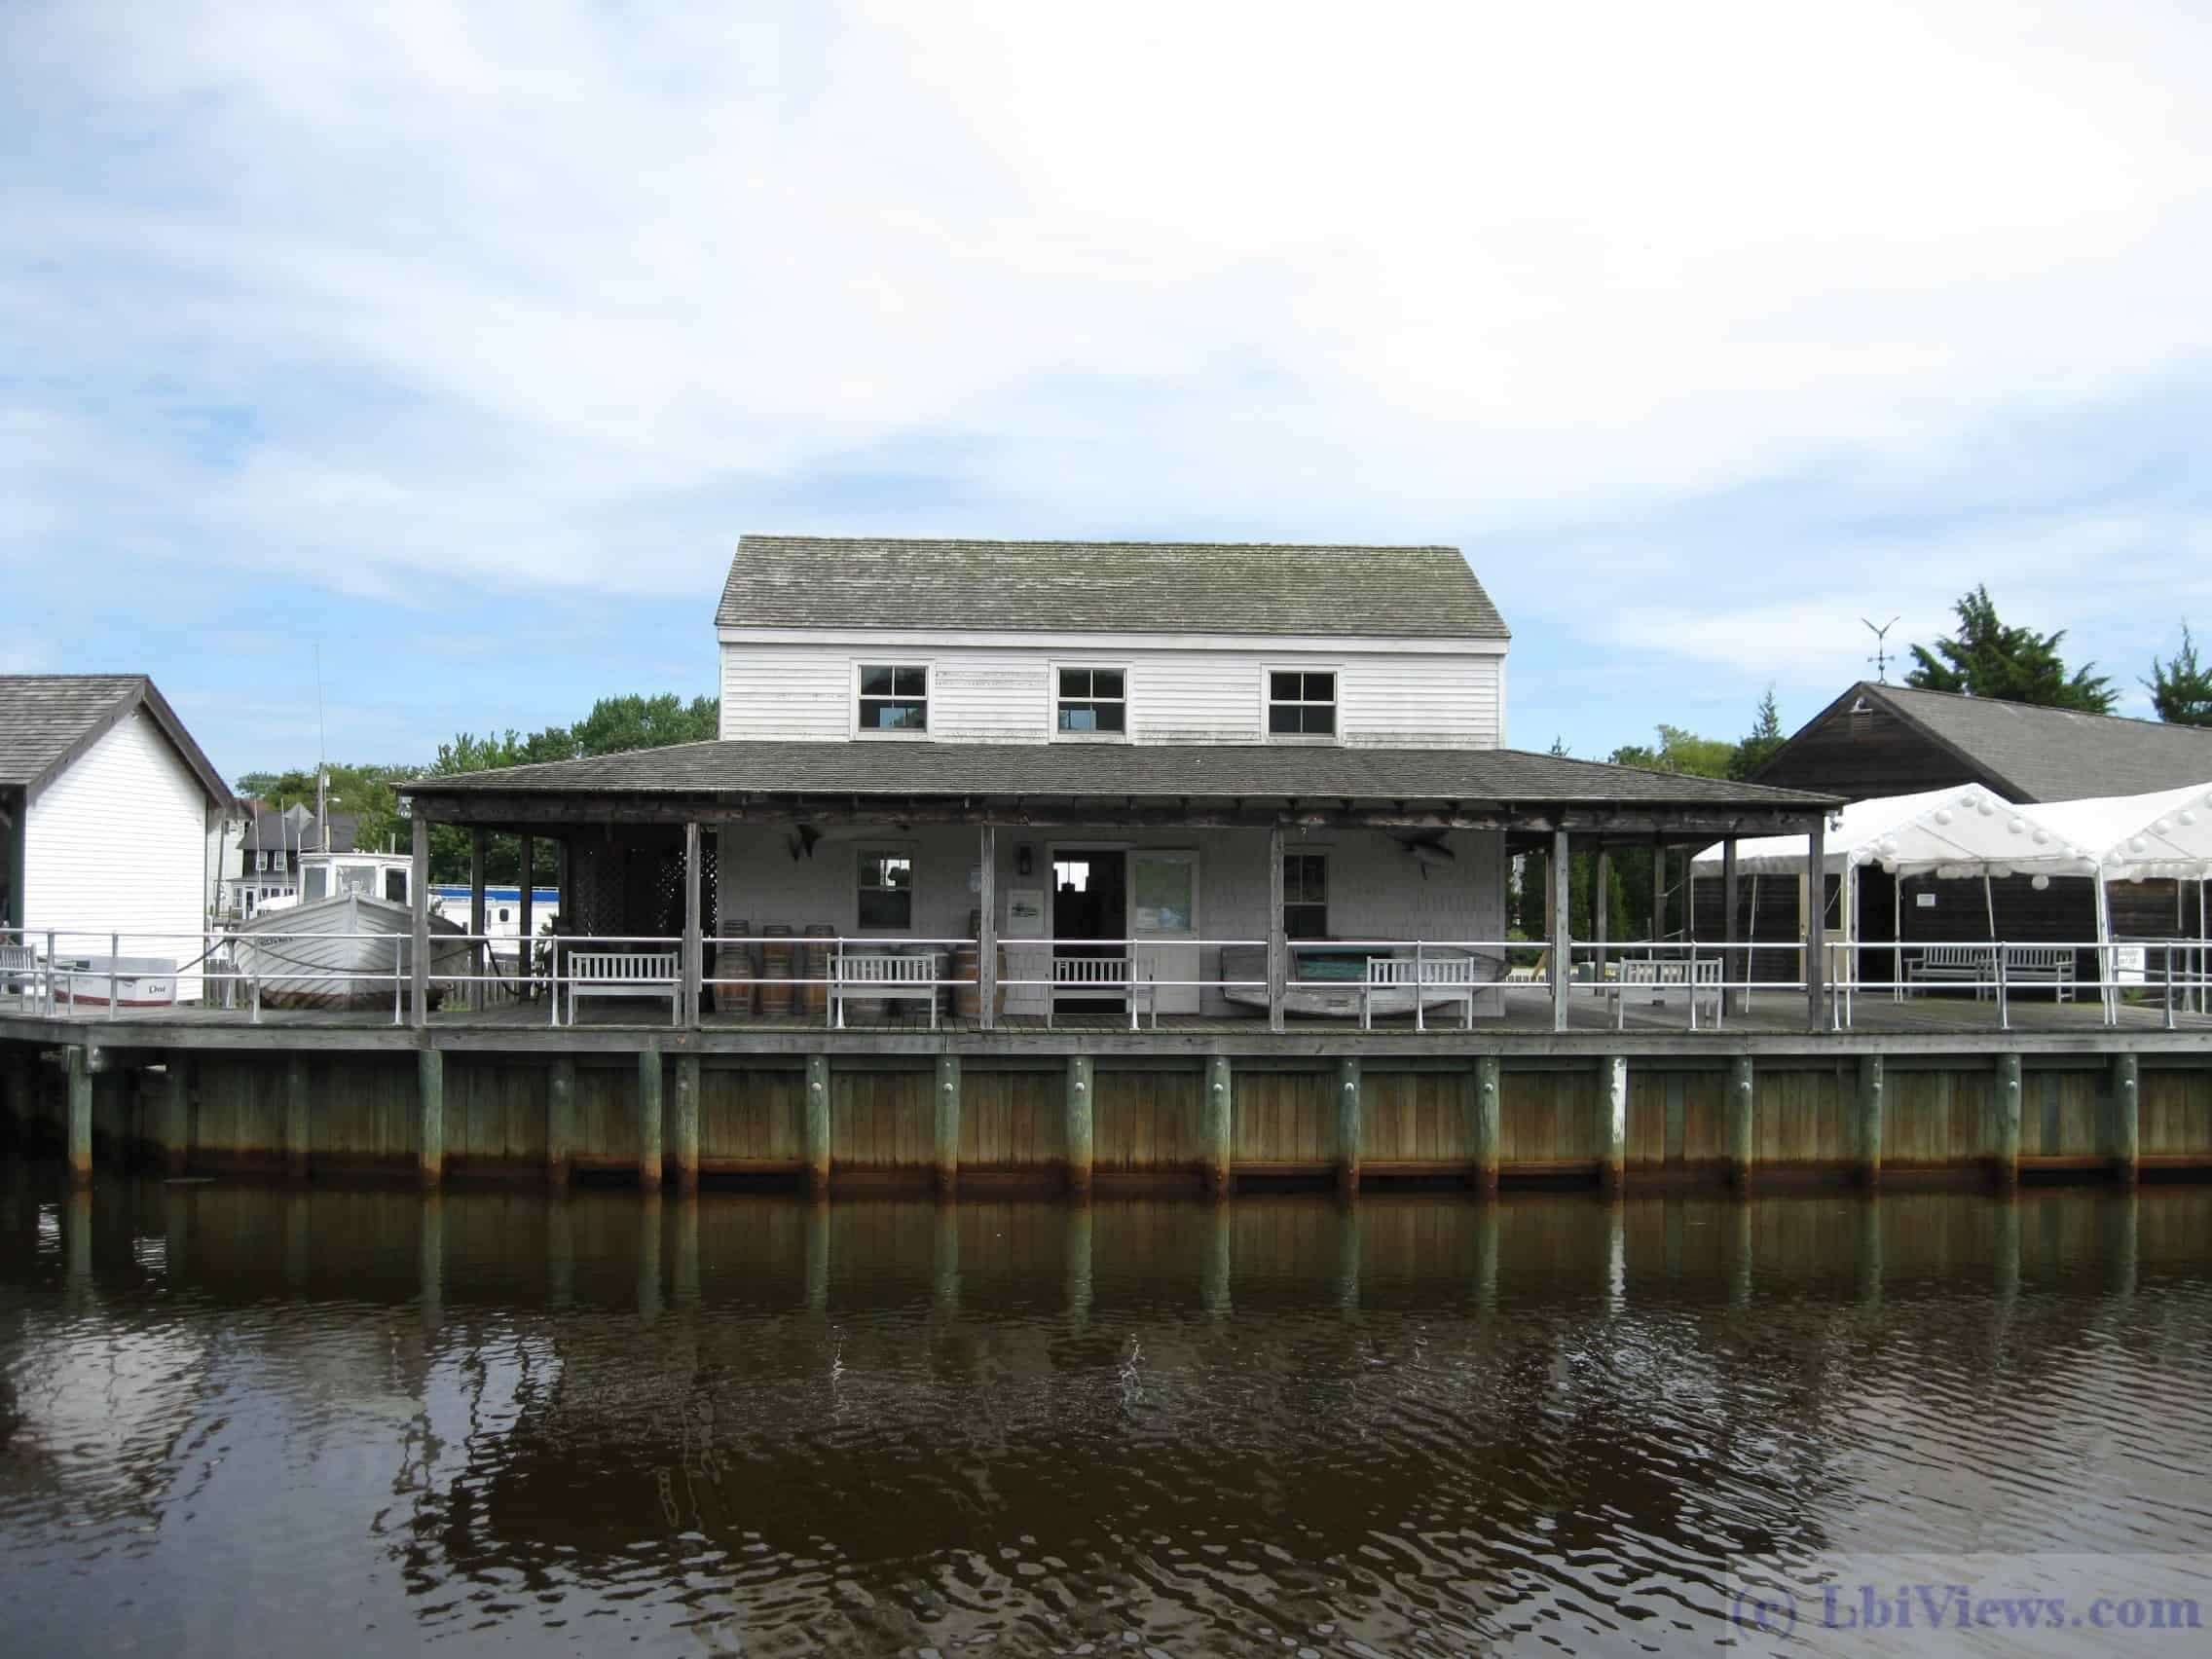 A recreation of the Hotel de Crab at Tuckerton Seaport. The original hotel was on Dock Street in Beach Haven